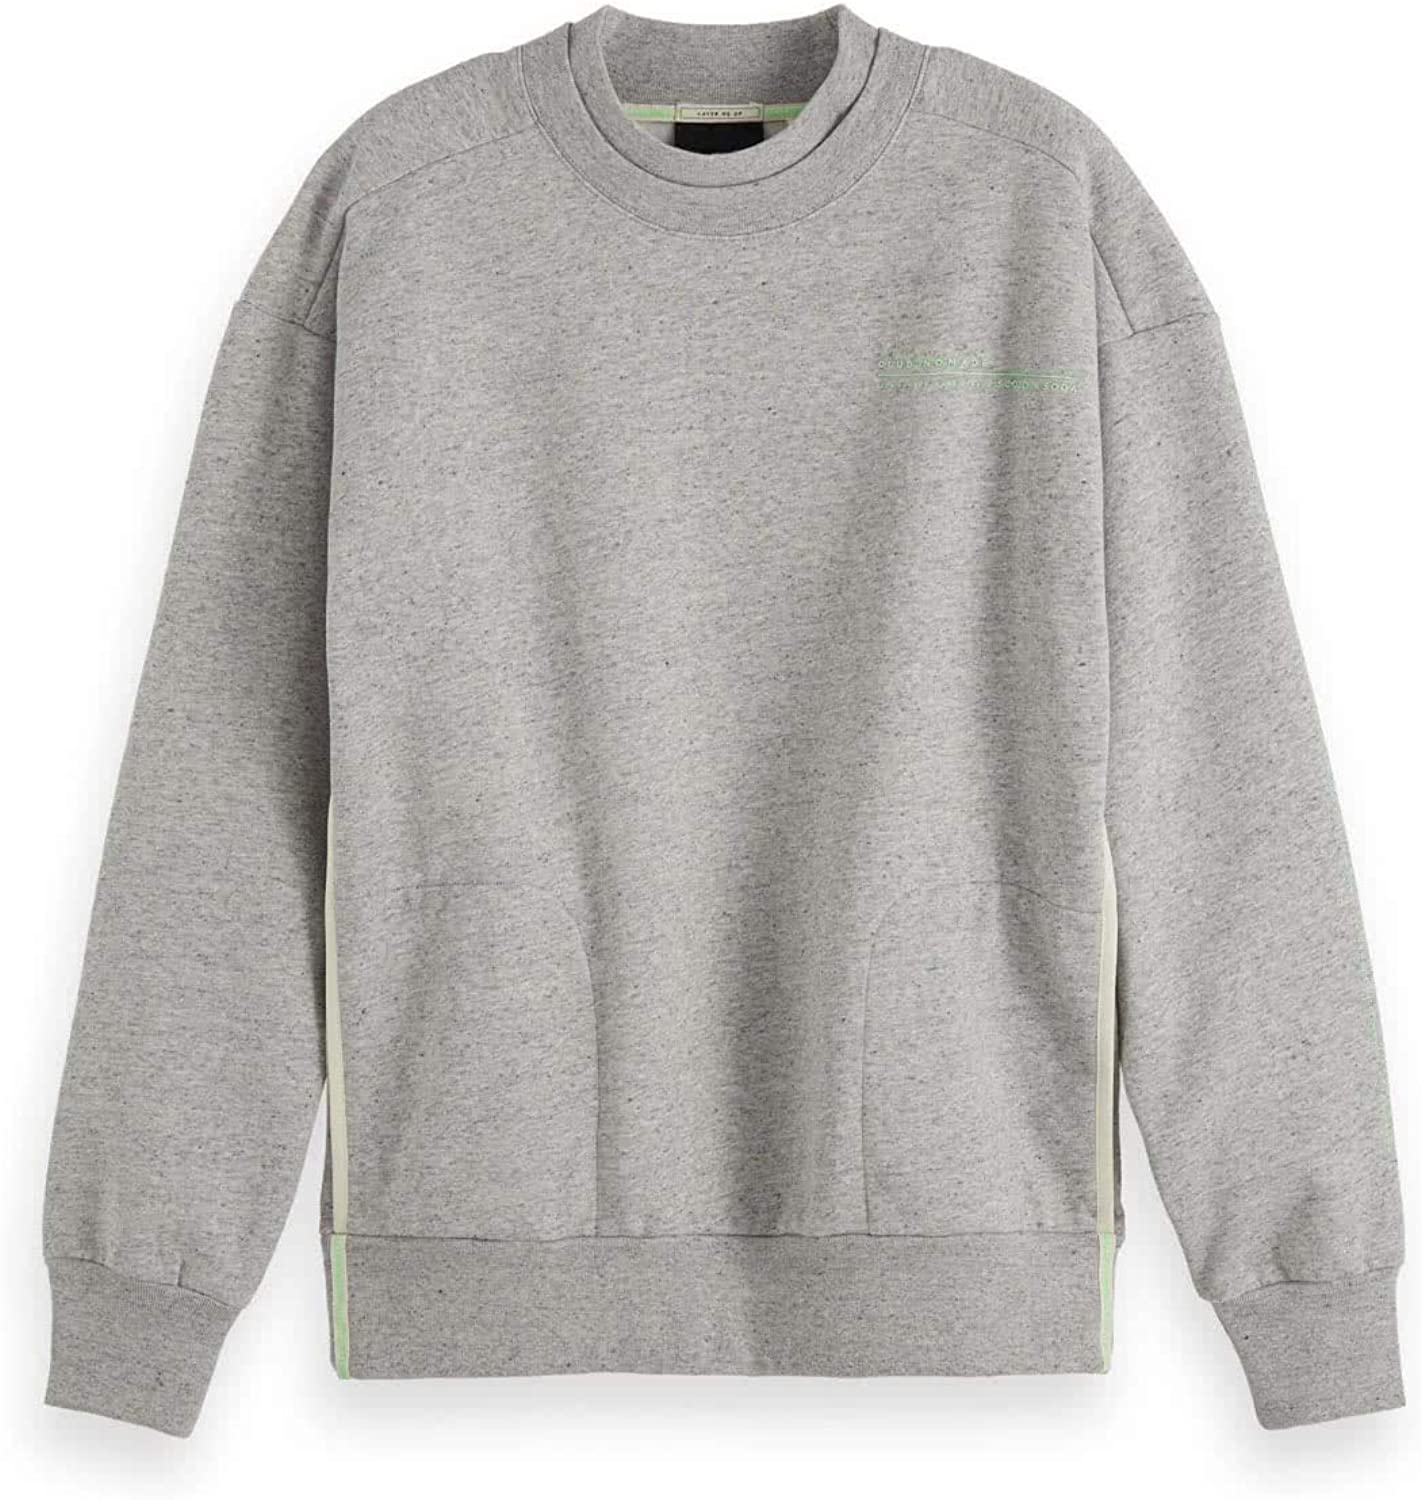 Scotch /& Soda Mens Premium Wool-Blend Shawl Sweater Grey L